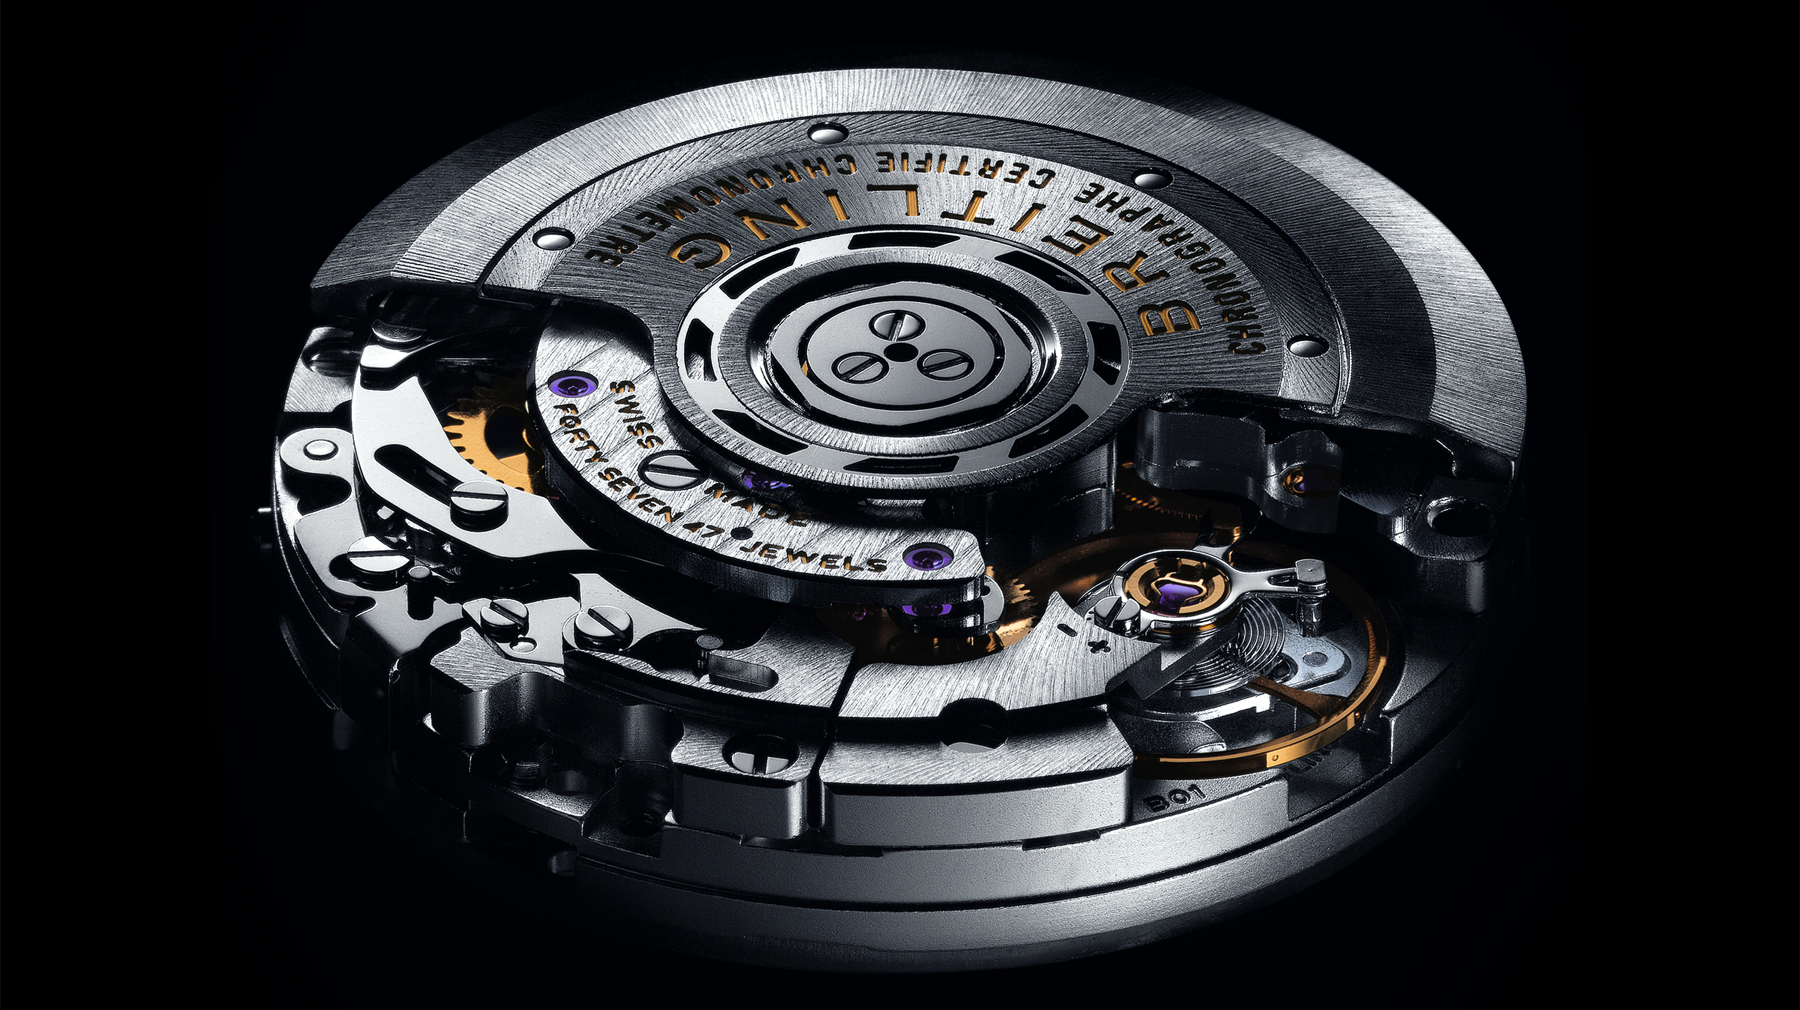 Swiss Breitling Replica Watches